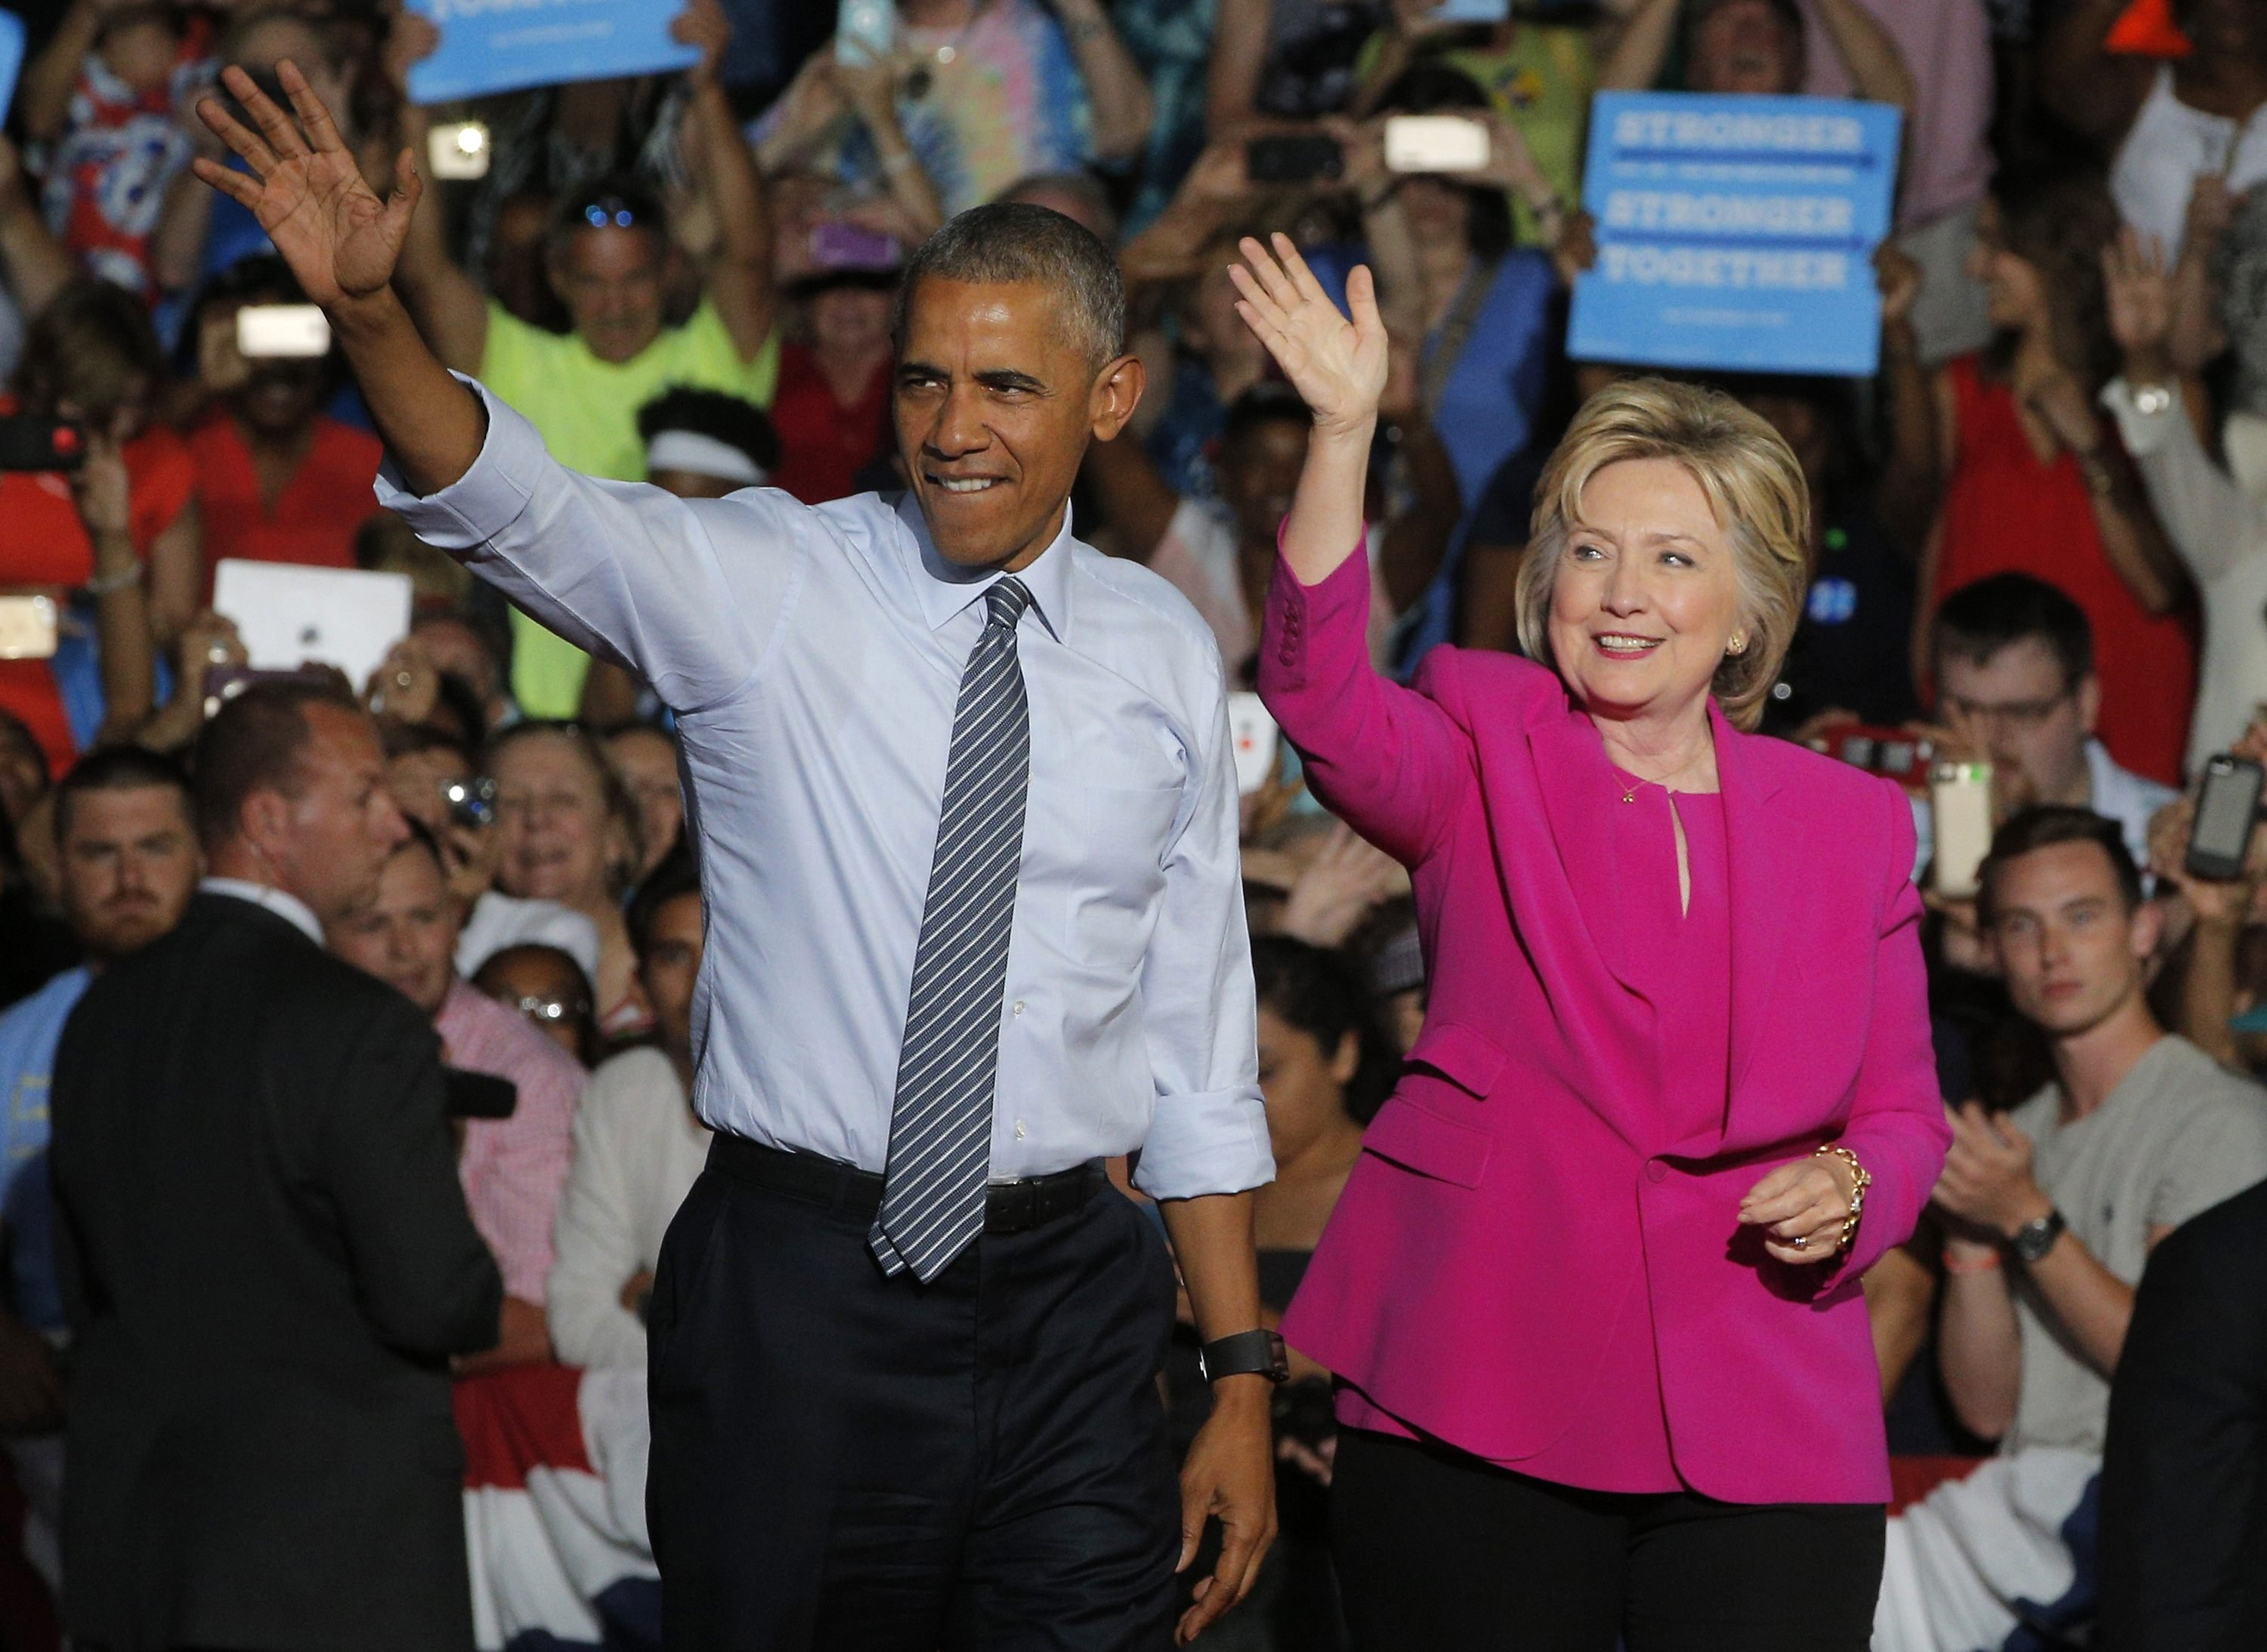 President Barack Obama waves with Democratic U.S. presidential candidate Hillary Clinton during a Clinton campaign event in Charlotte, July 5, 2016.